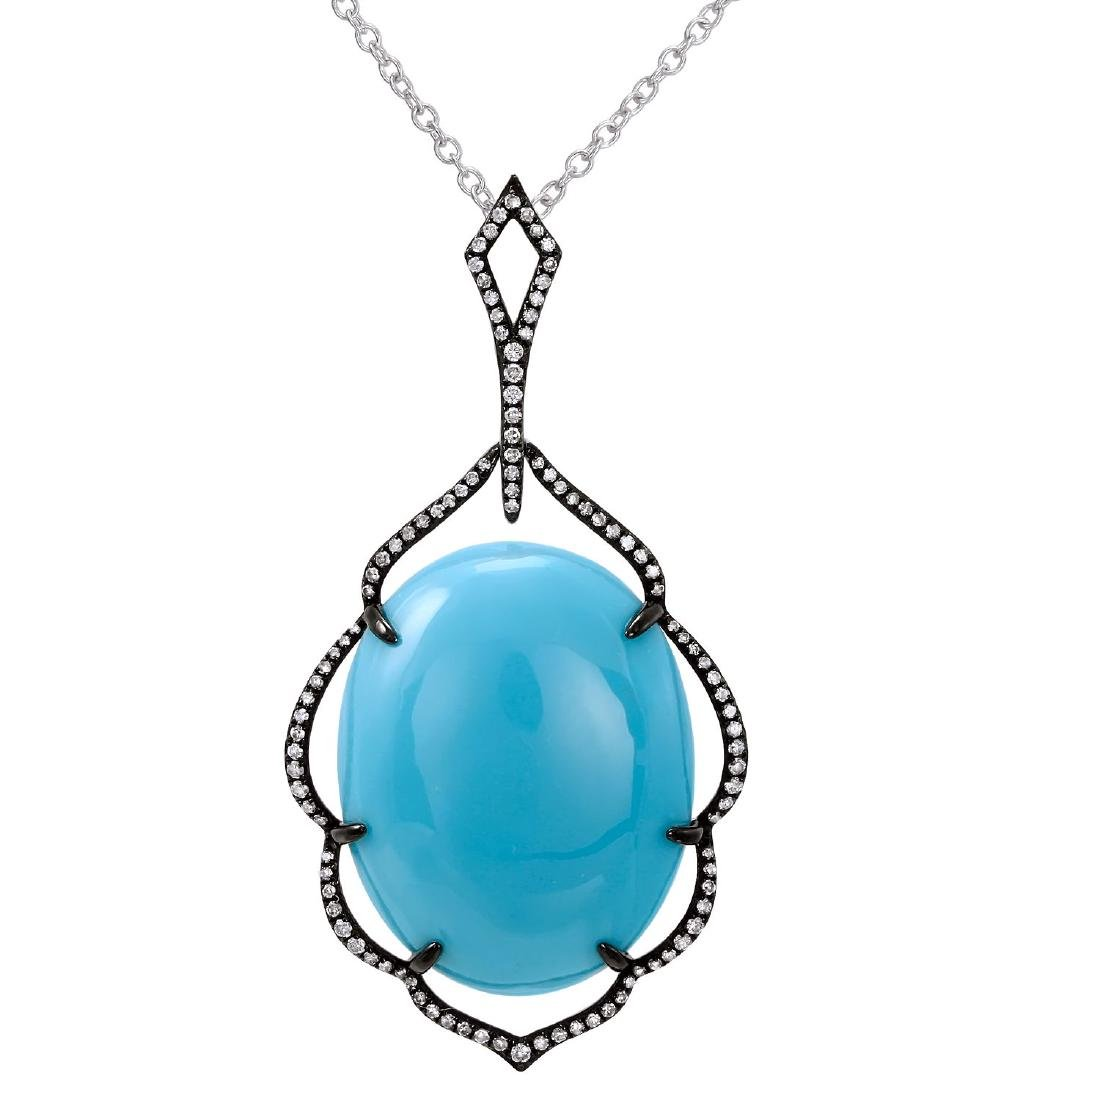 14KT  Gold Gemstone Pendant With Chain - 2